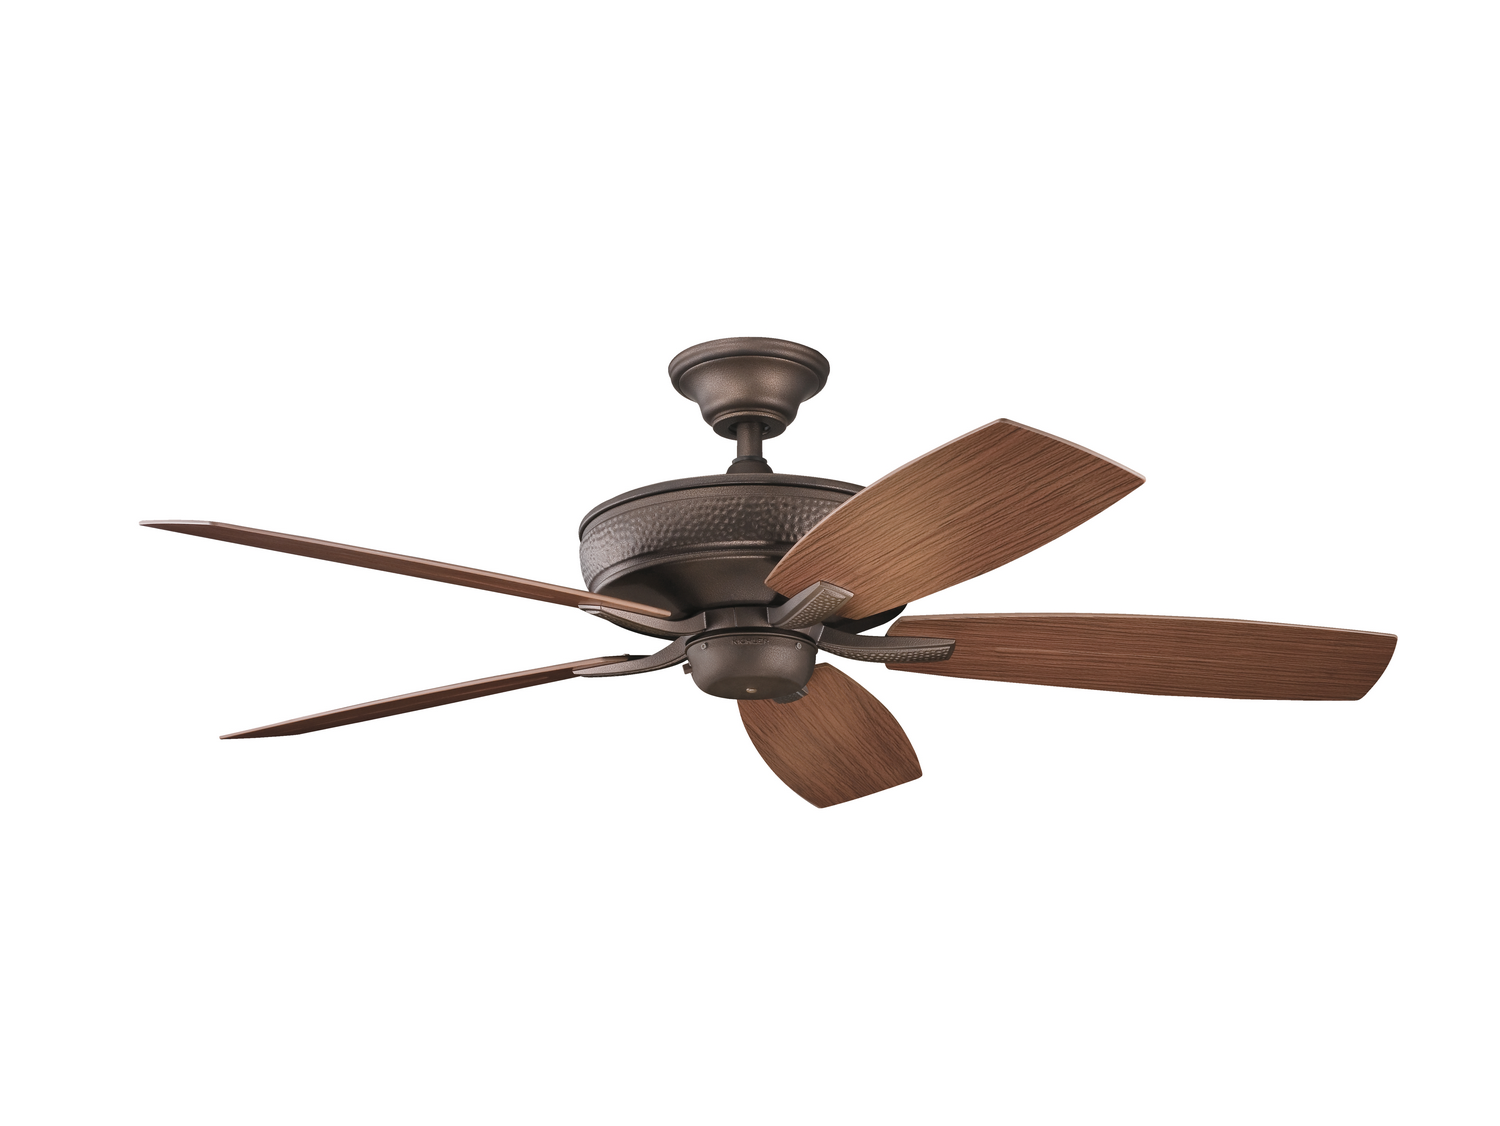 52 inchCeiling Fan from the II Patio collection by Kichler 310103WCP